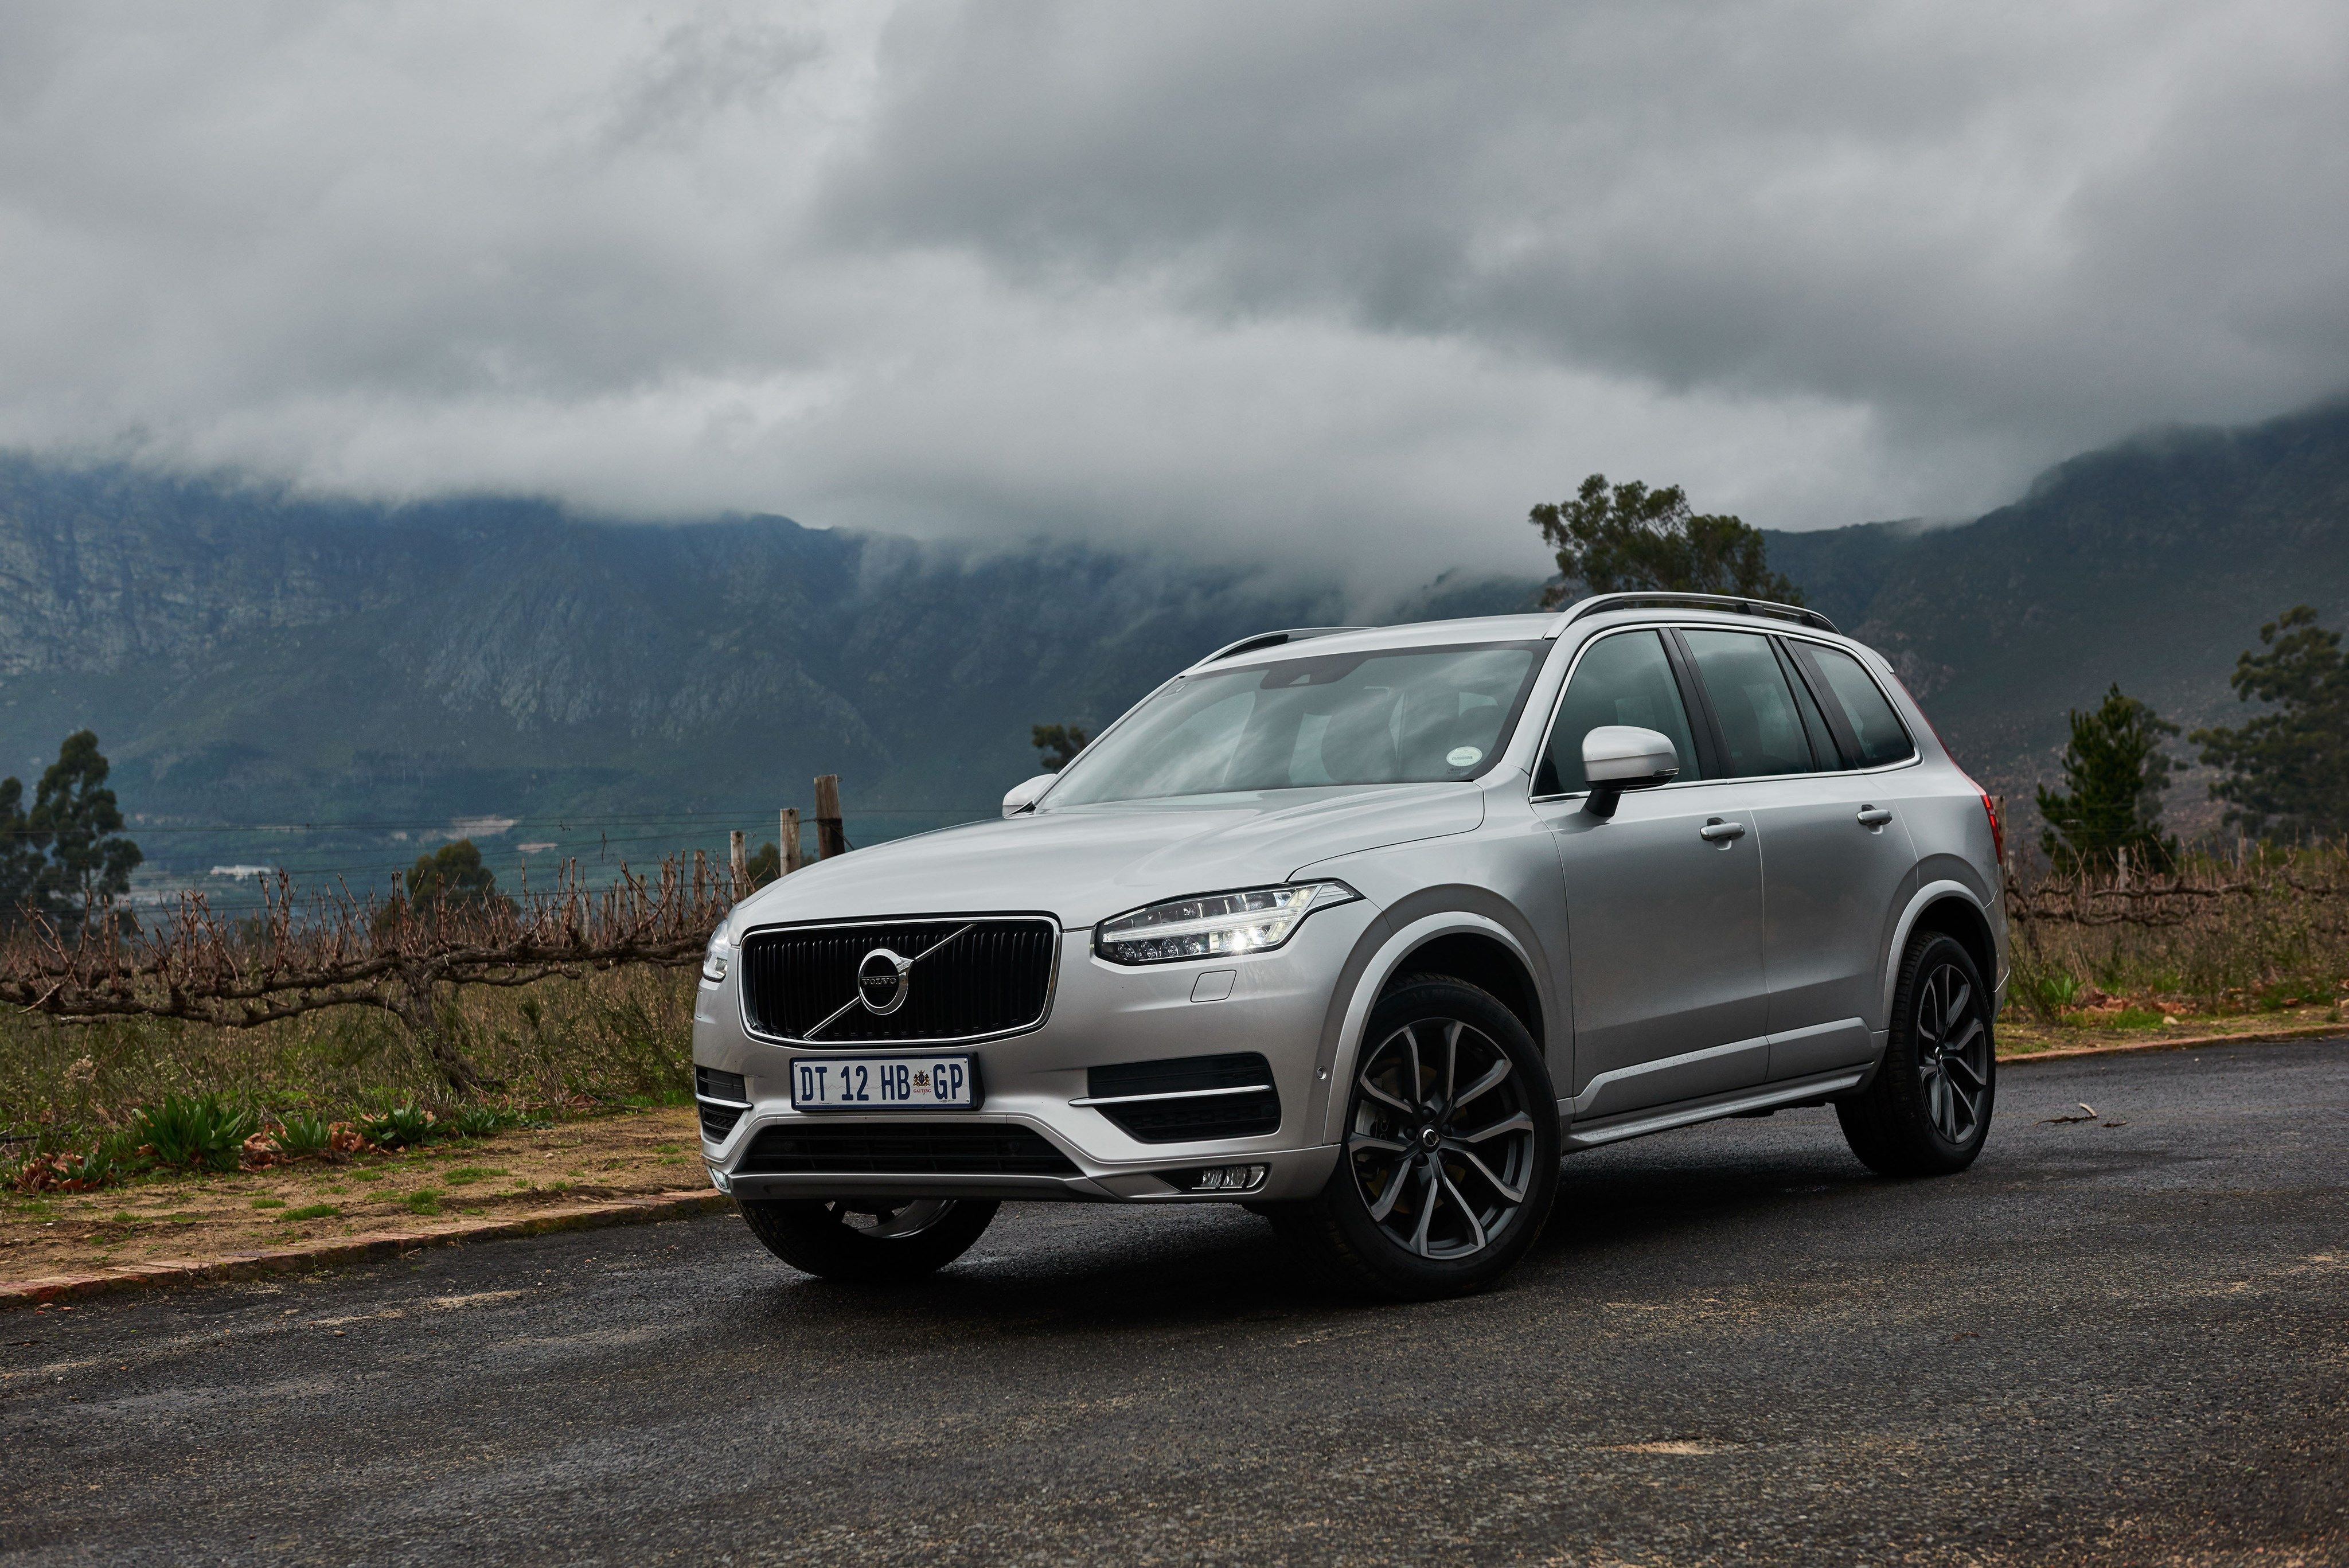 Volvo Xc90 4k Wallpaper 4096x2734 With Images Volvo Xc90